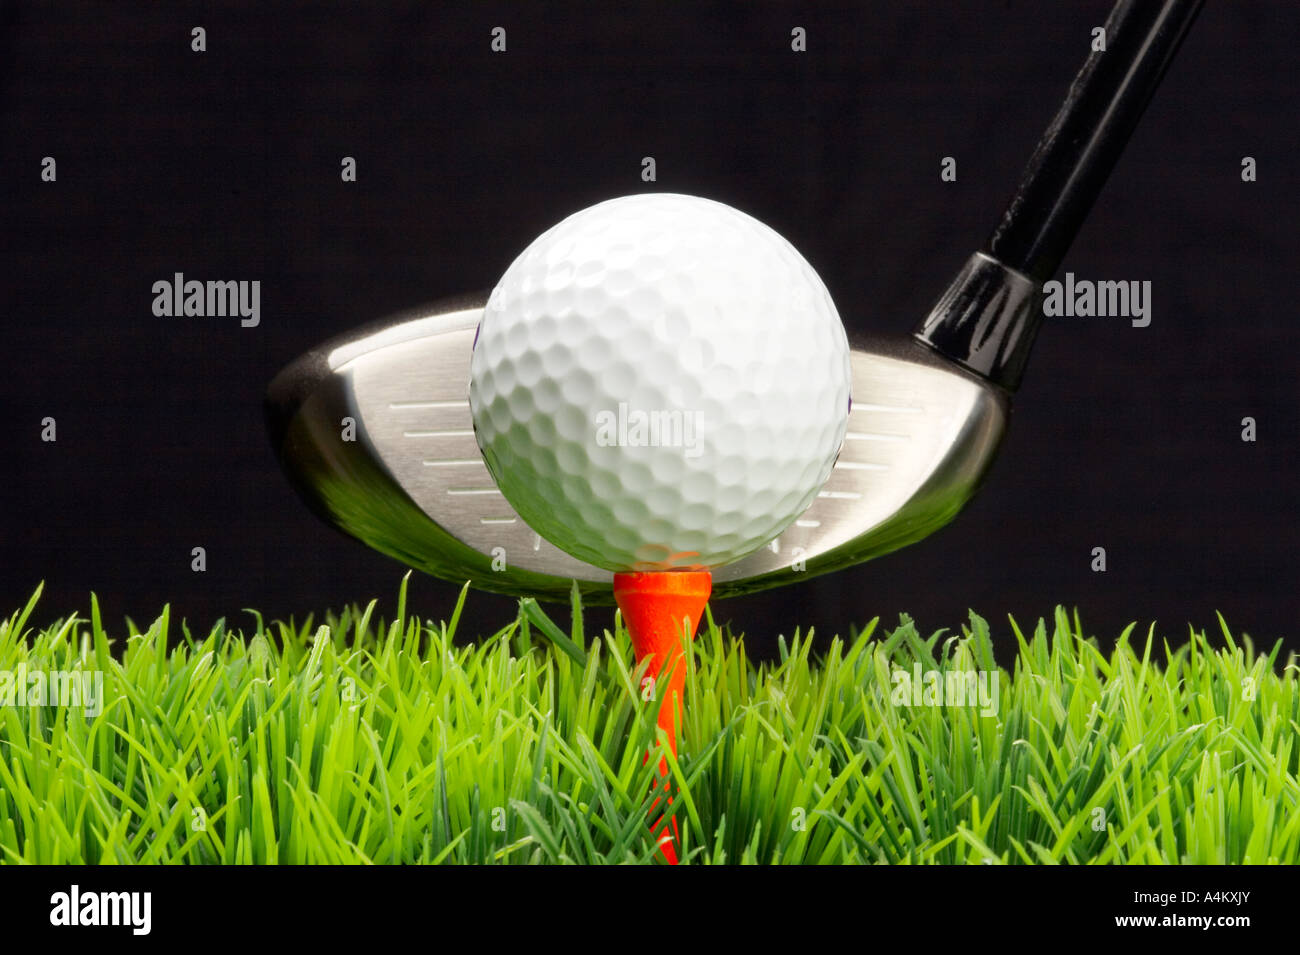 tee off and driving the golfball Stock Photo